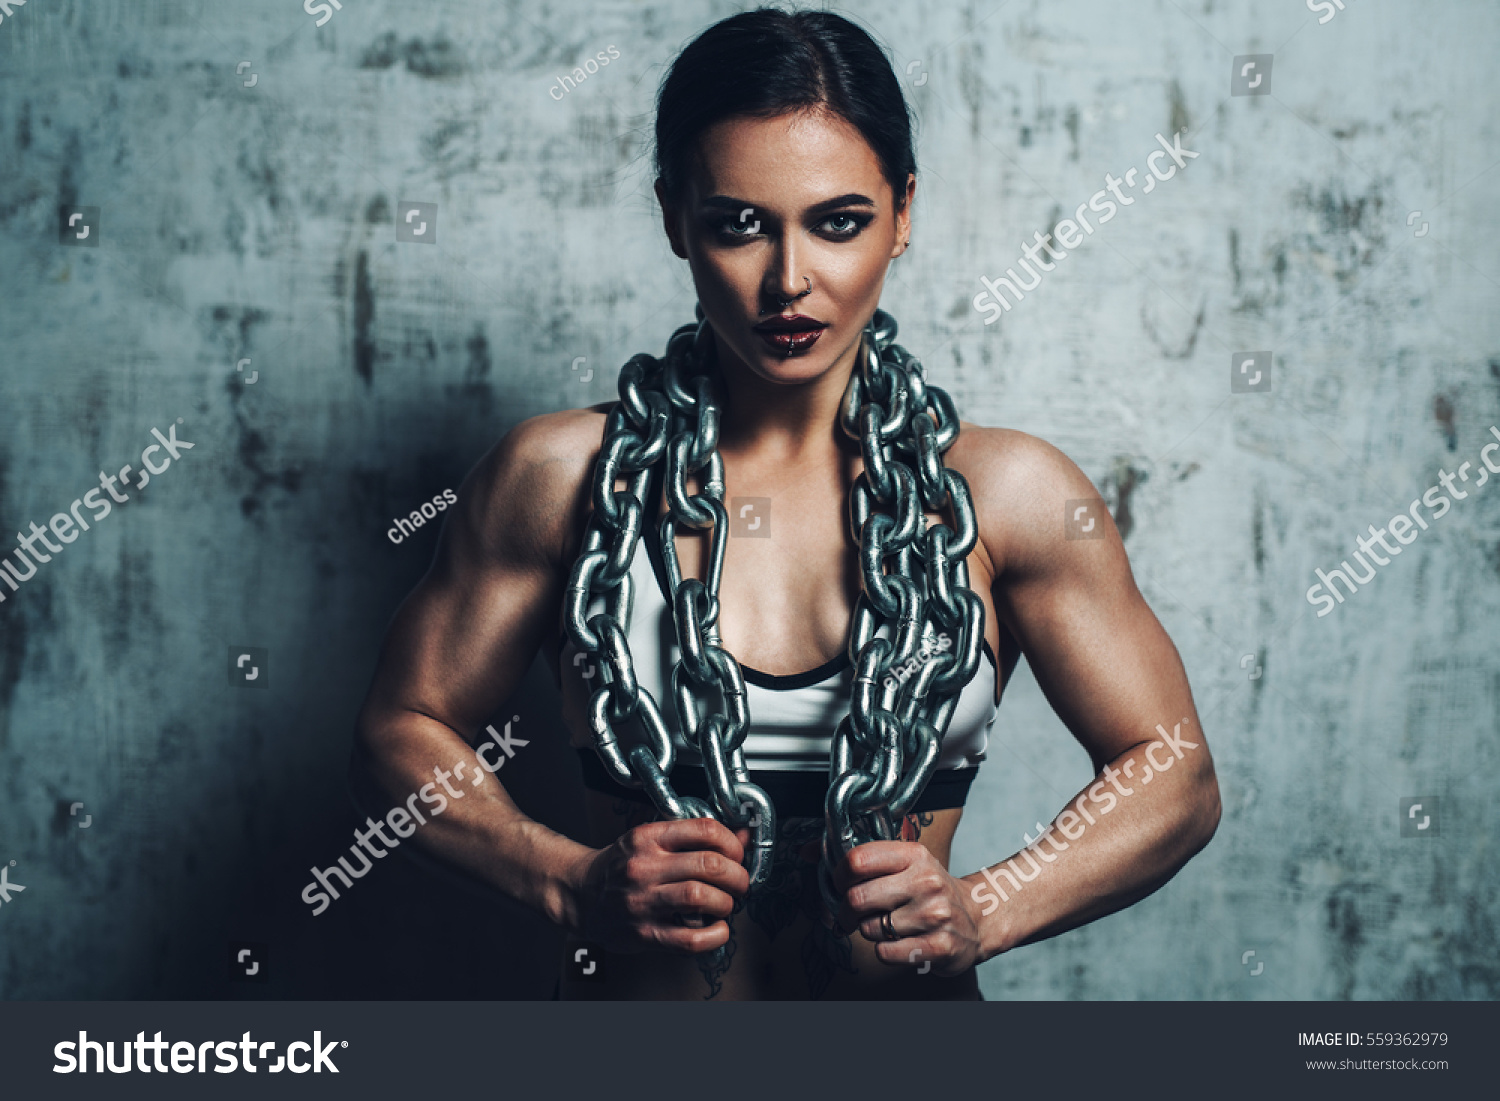 tattooing and body piercing in youth and adolescence Teenagers who sport body piercings are more likely to take part in  at a young  age is weaker than the link between tattoos and such actions,.